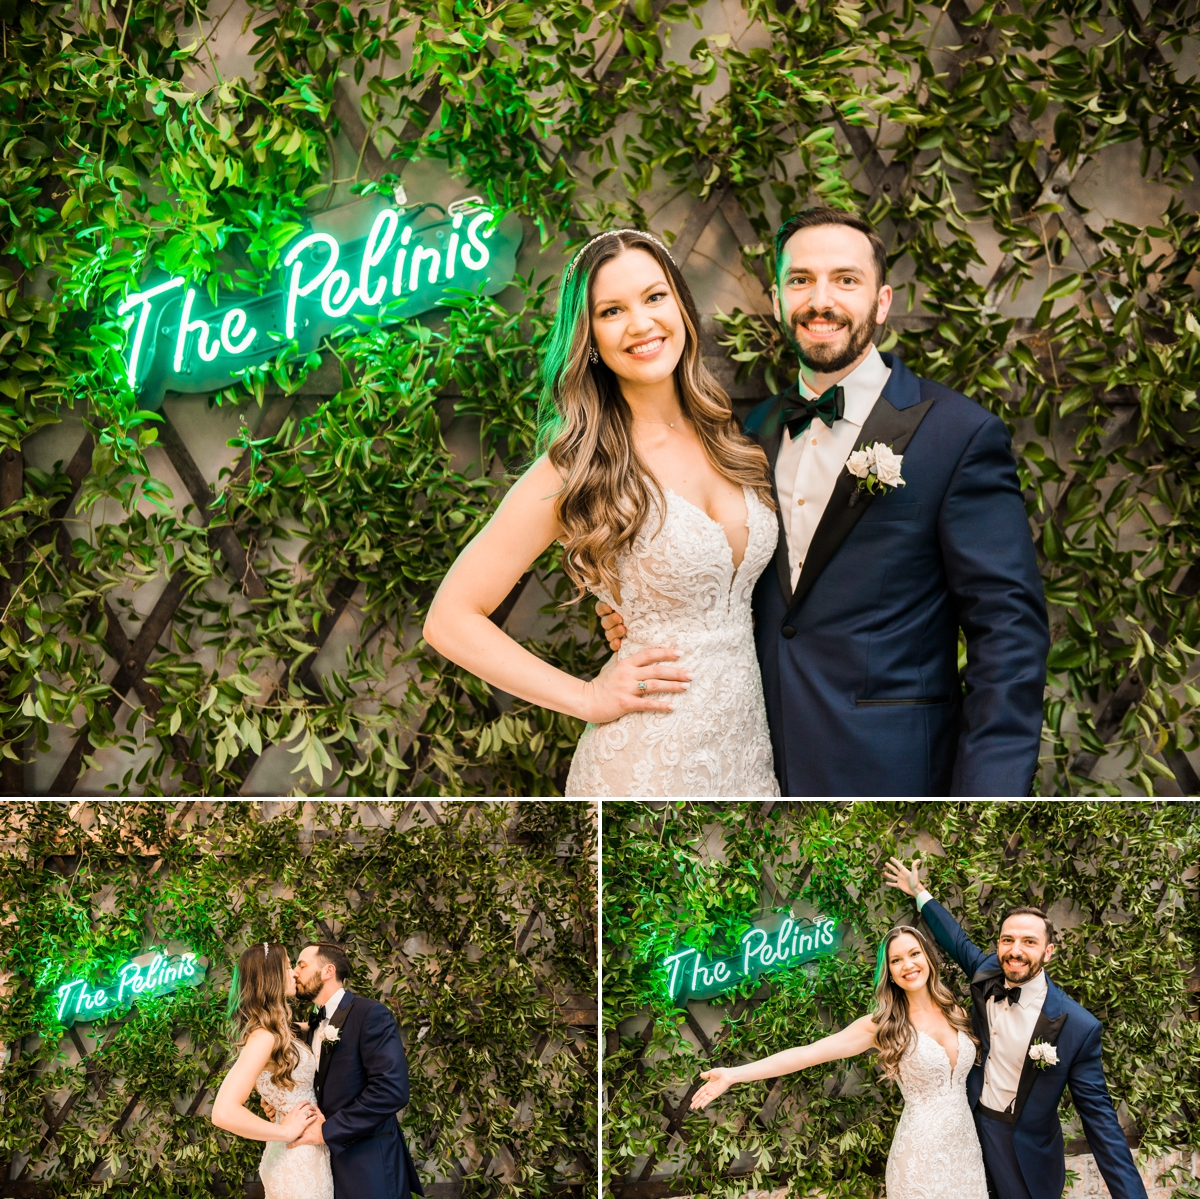 Bride and Groom in front of their custom neon sign